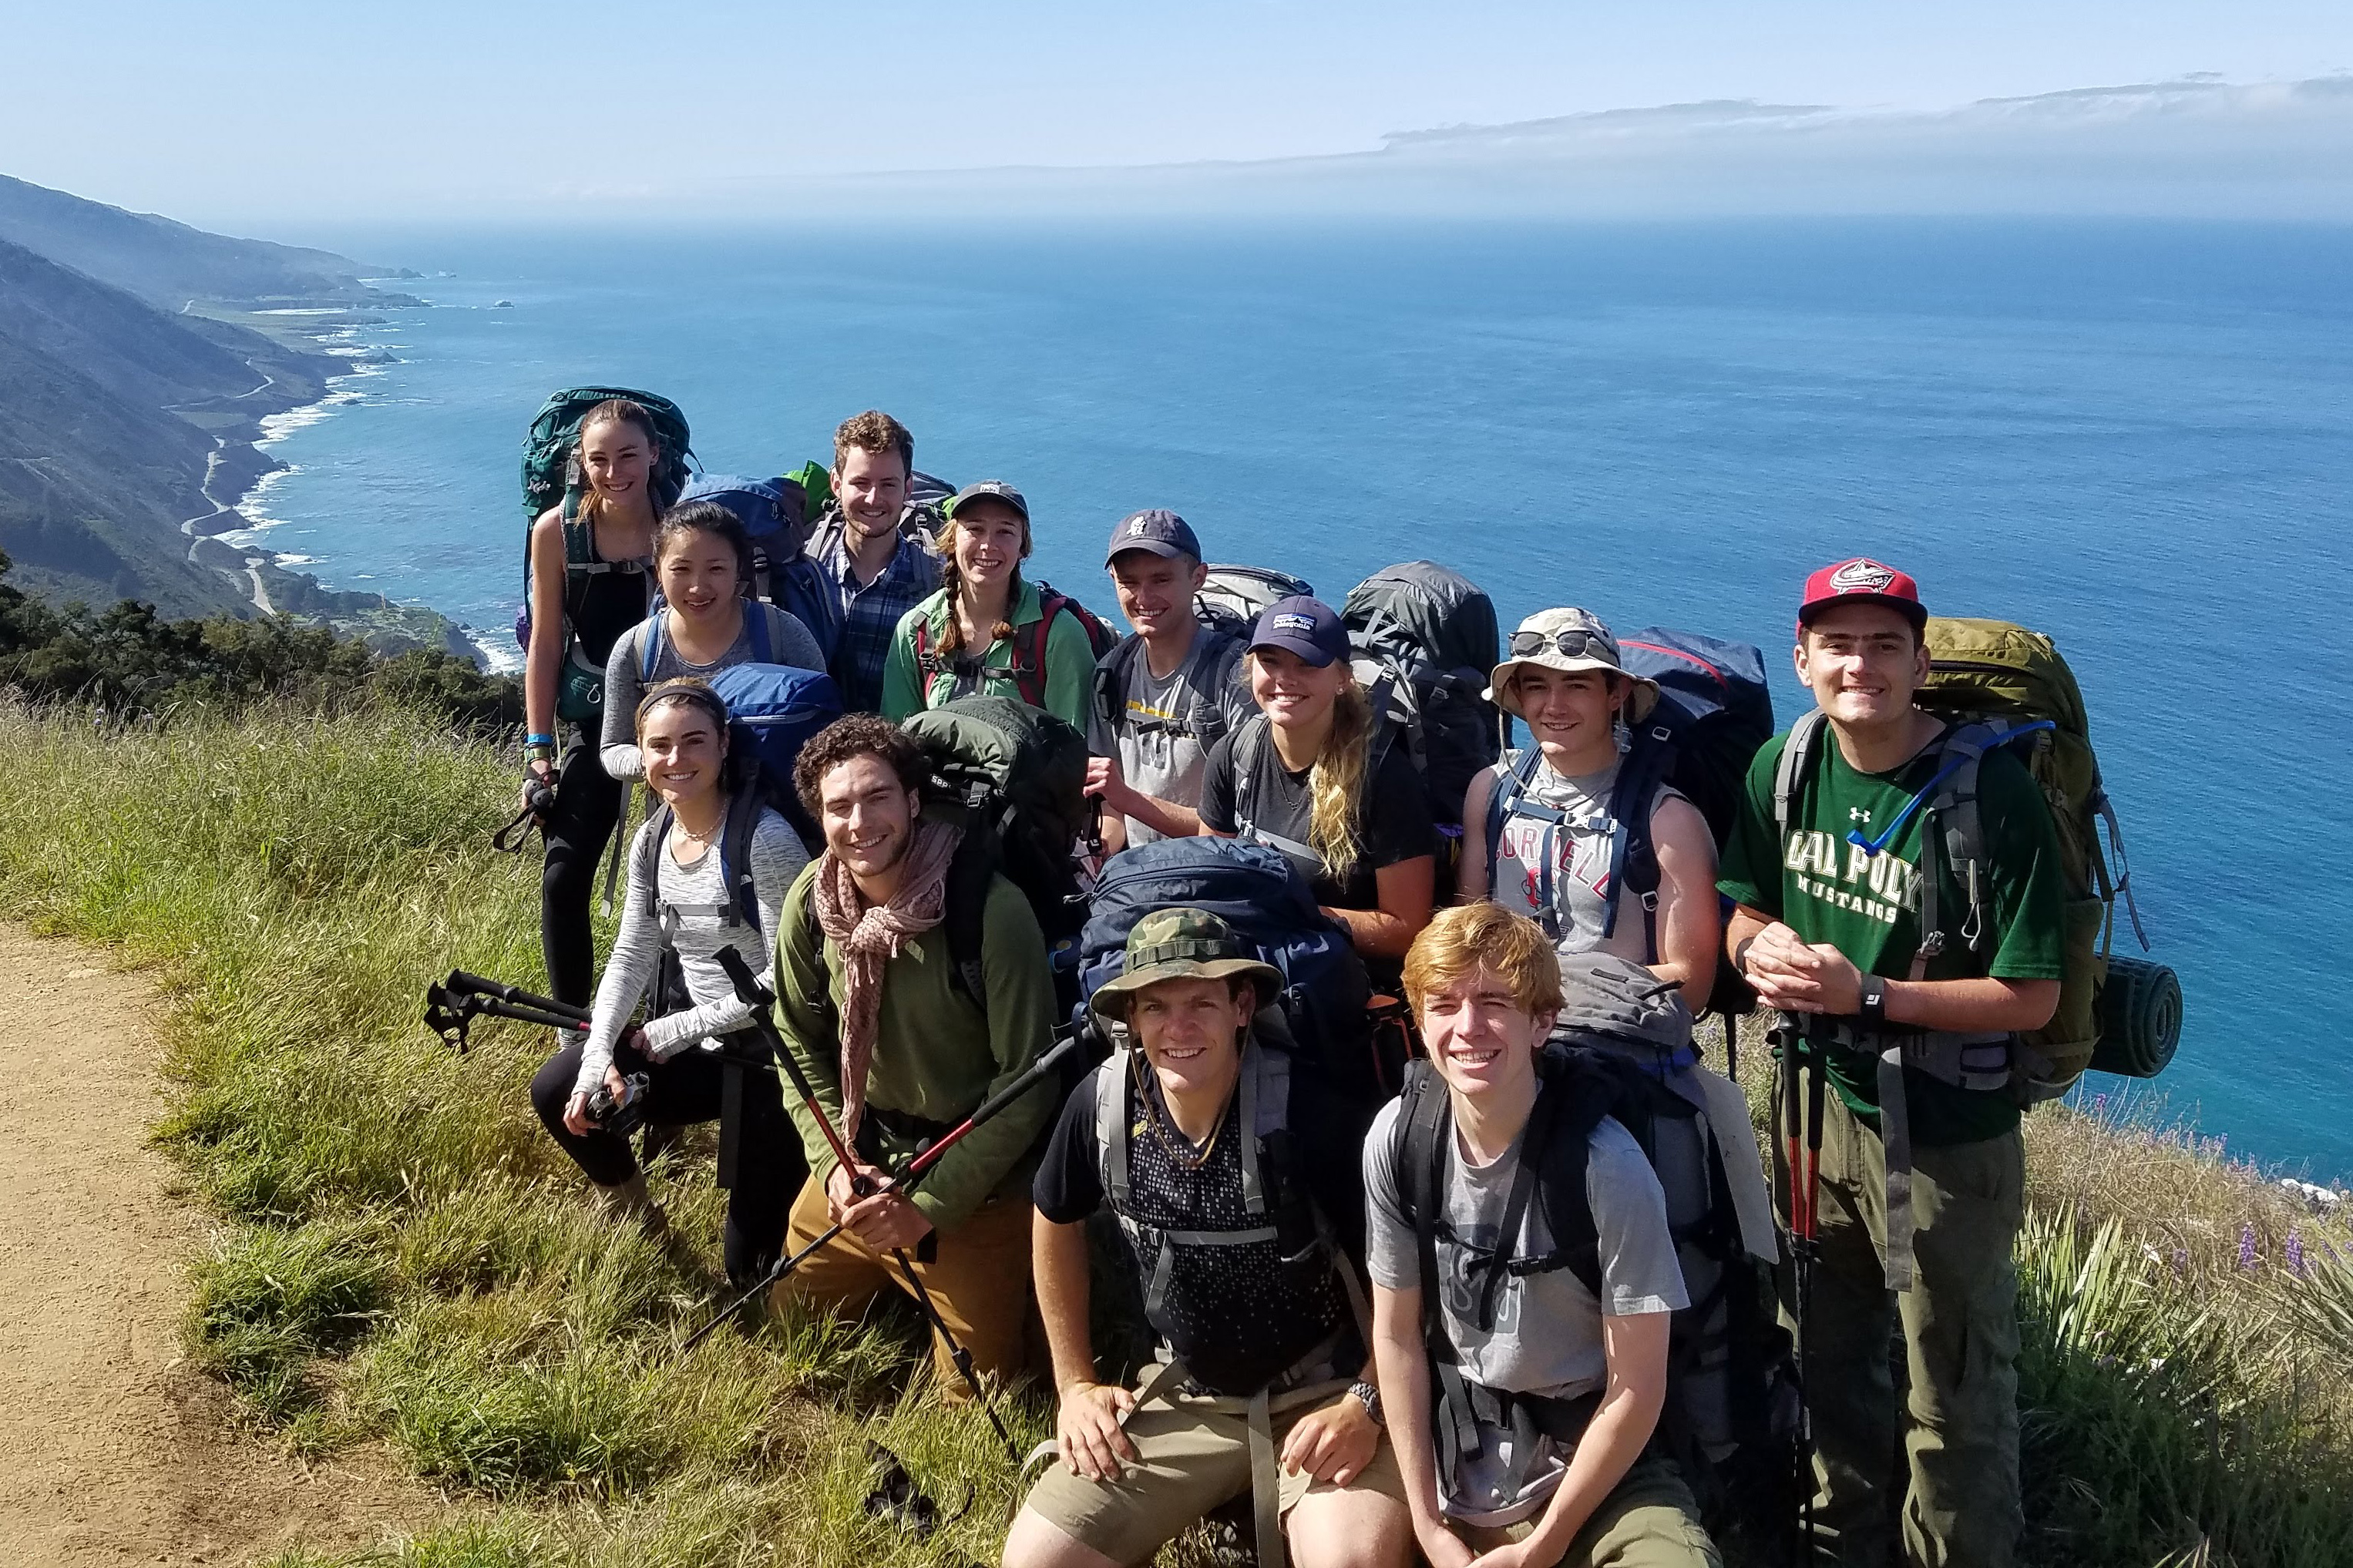 A group of students smile while standing in front of the Big Sur coastline